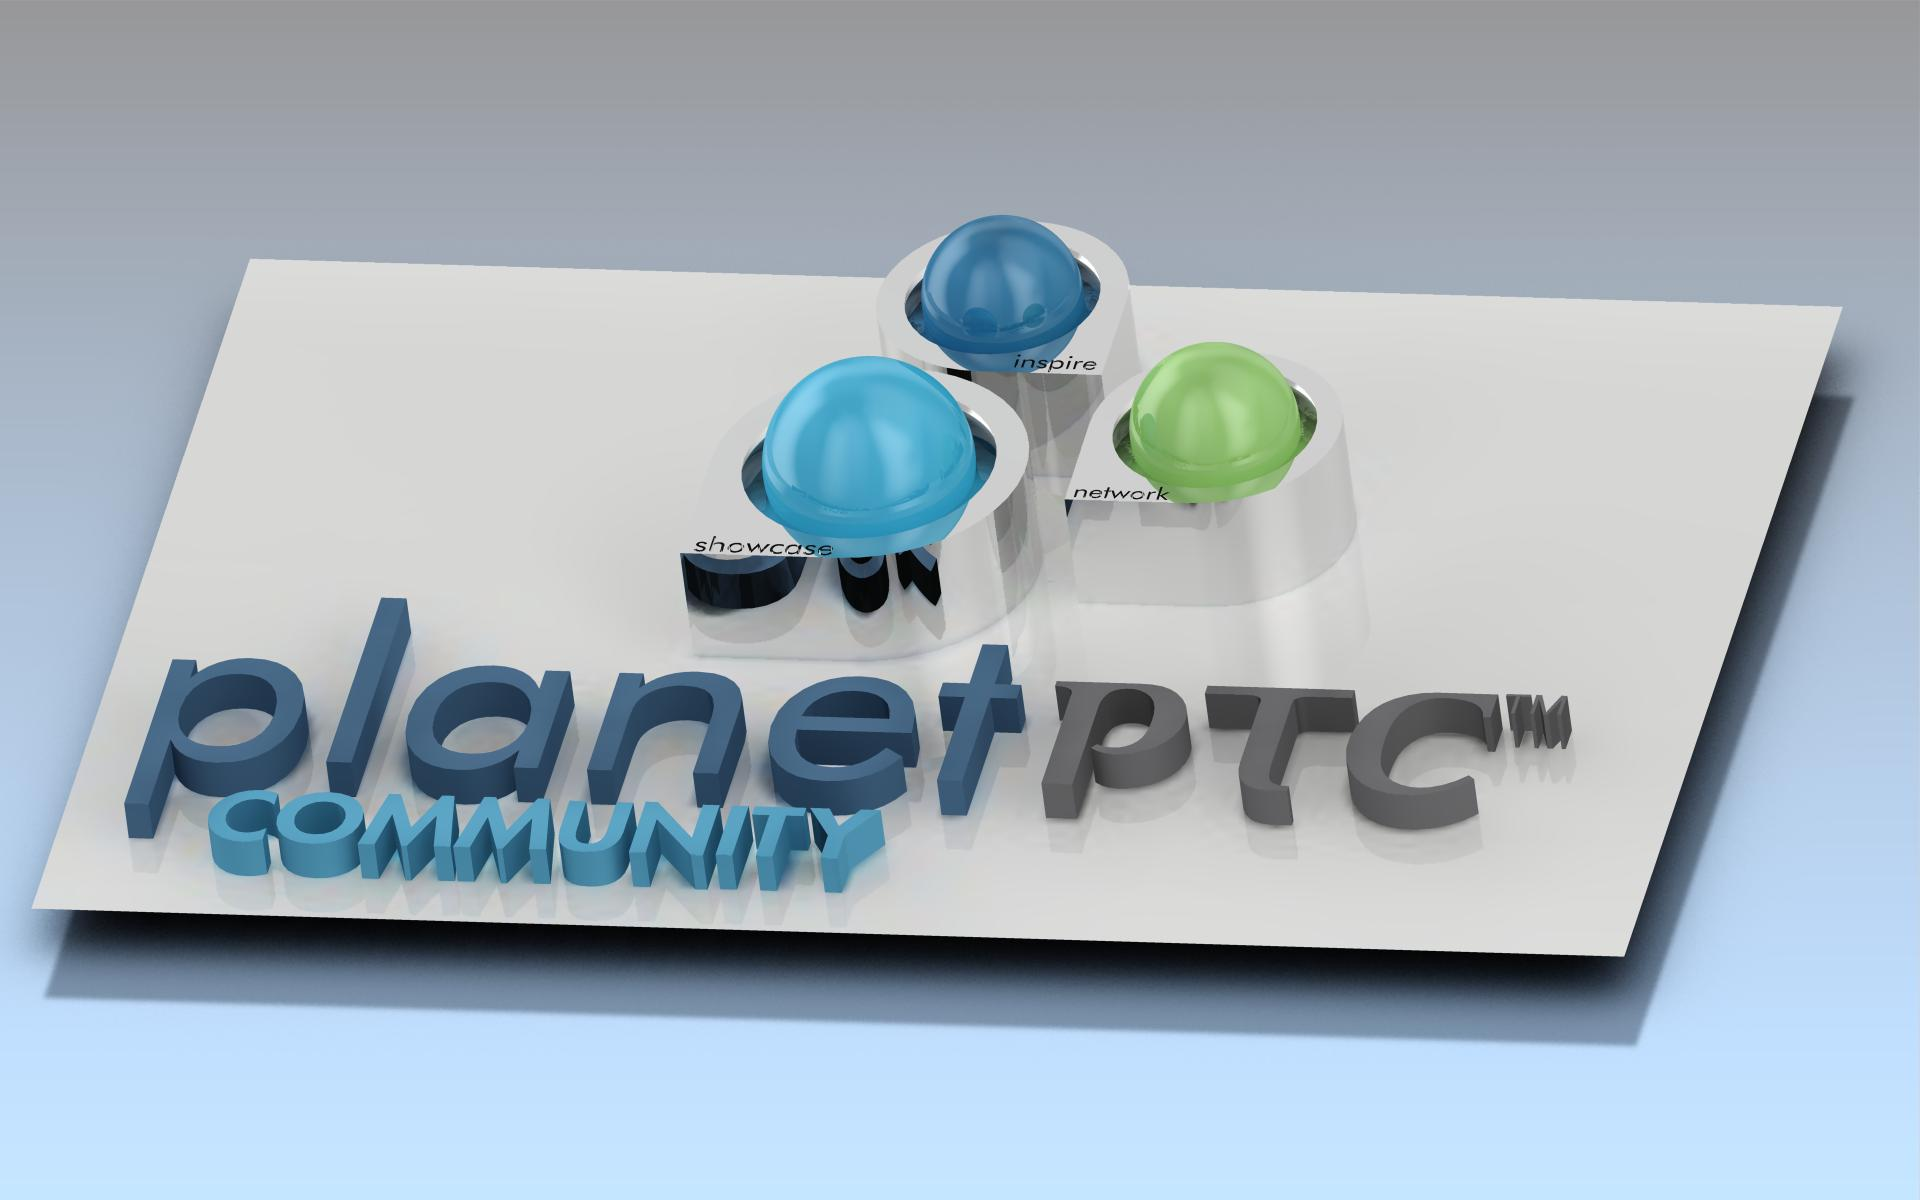 3d business card 3d business card for planetptc - 3 D Business Card